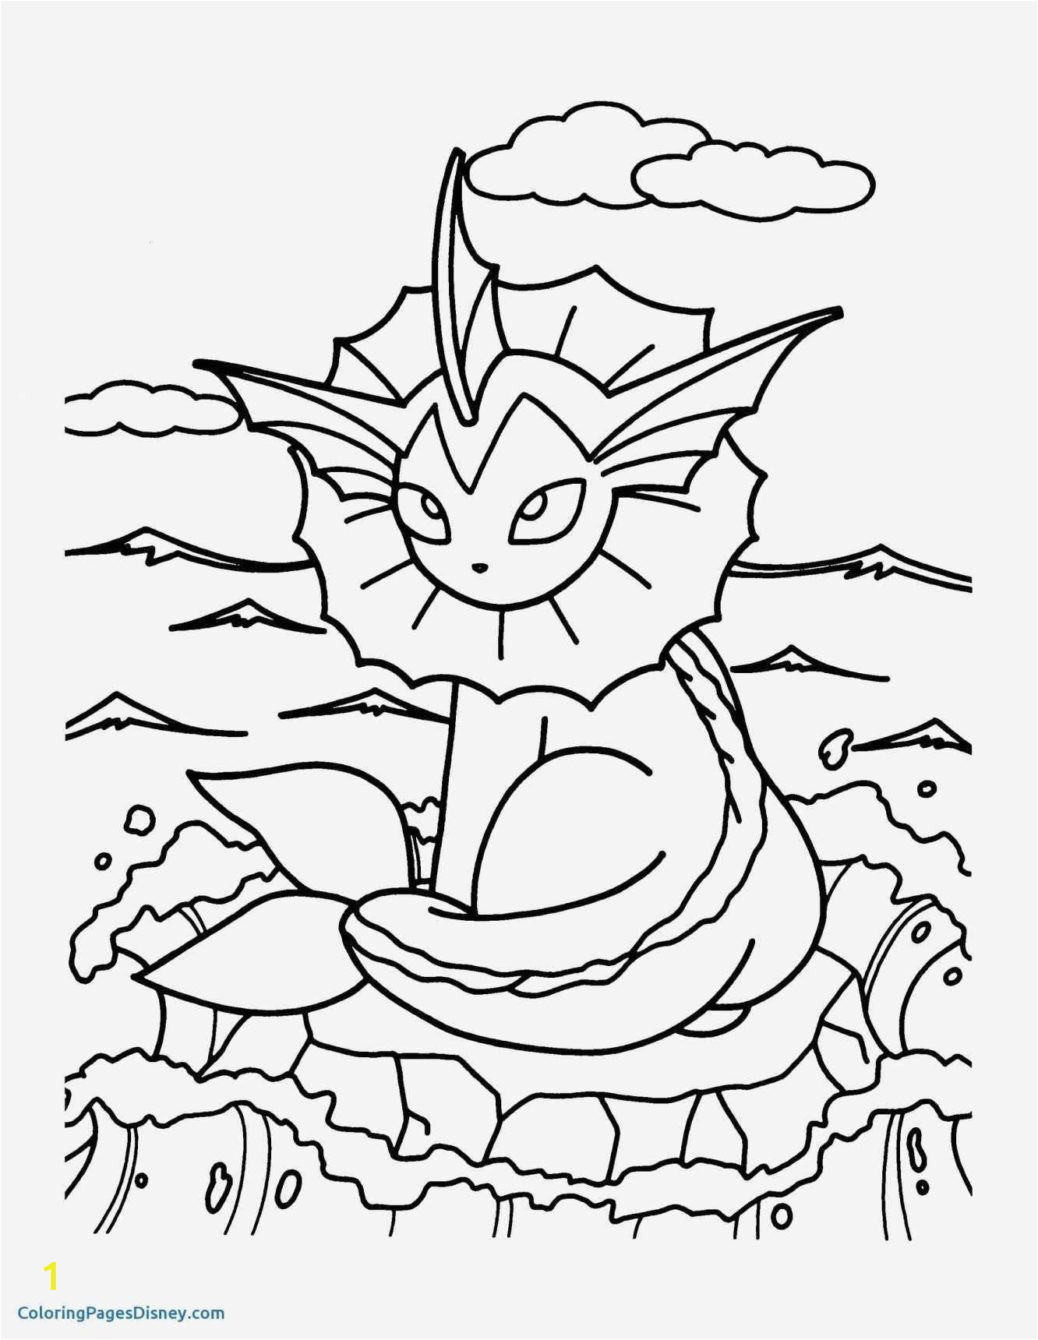 free fairy coloring pages awesome 54 most matchless princess coloring pages to print best of free fairy coloring pages